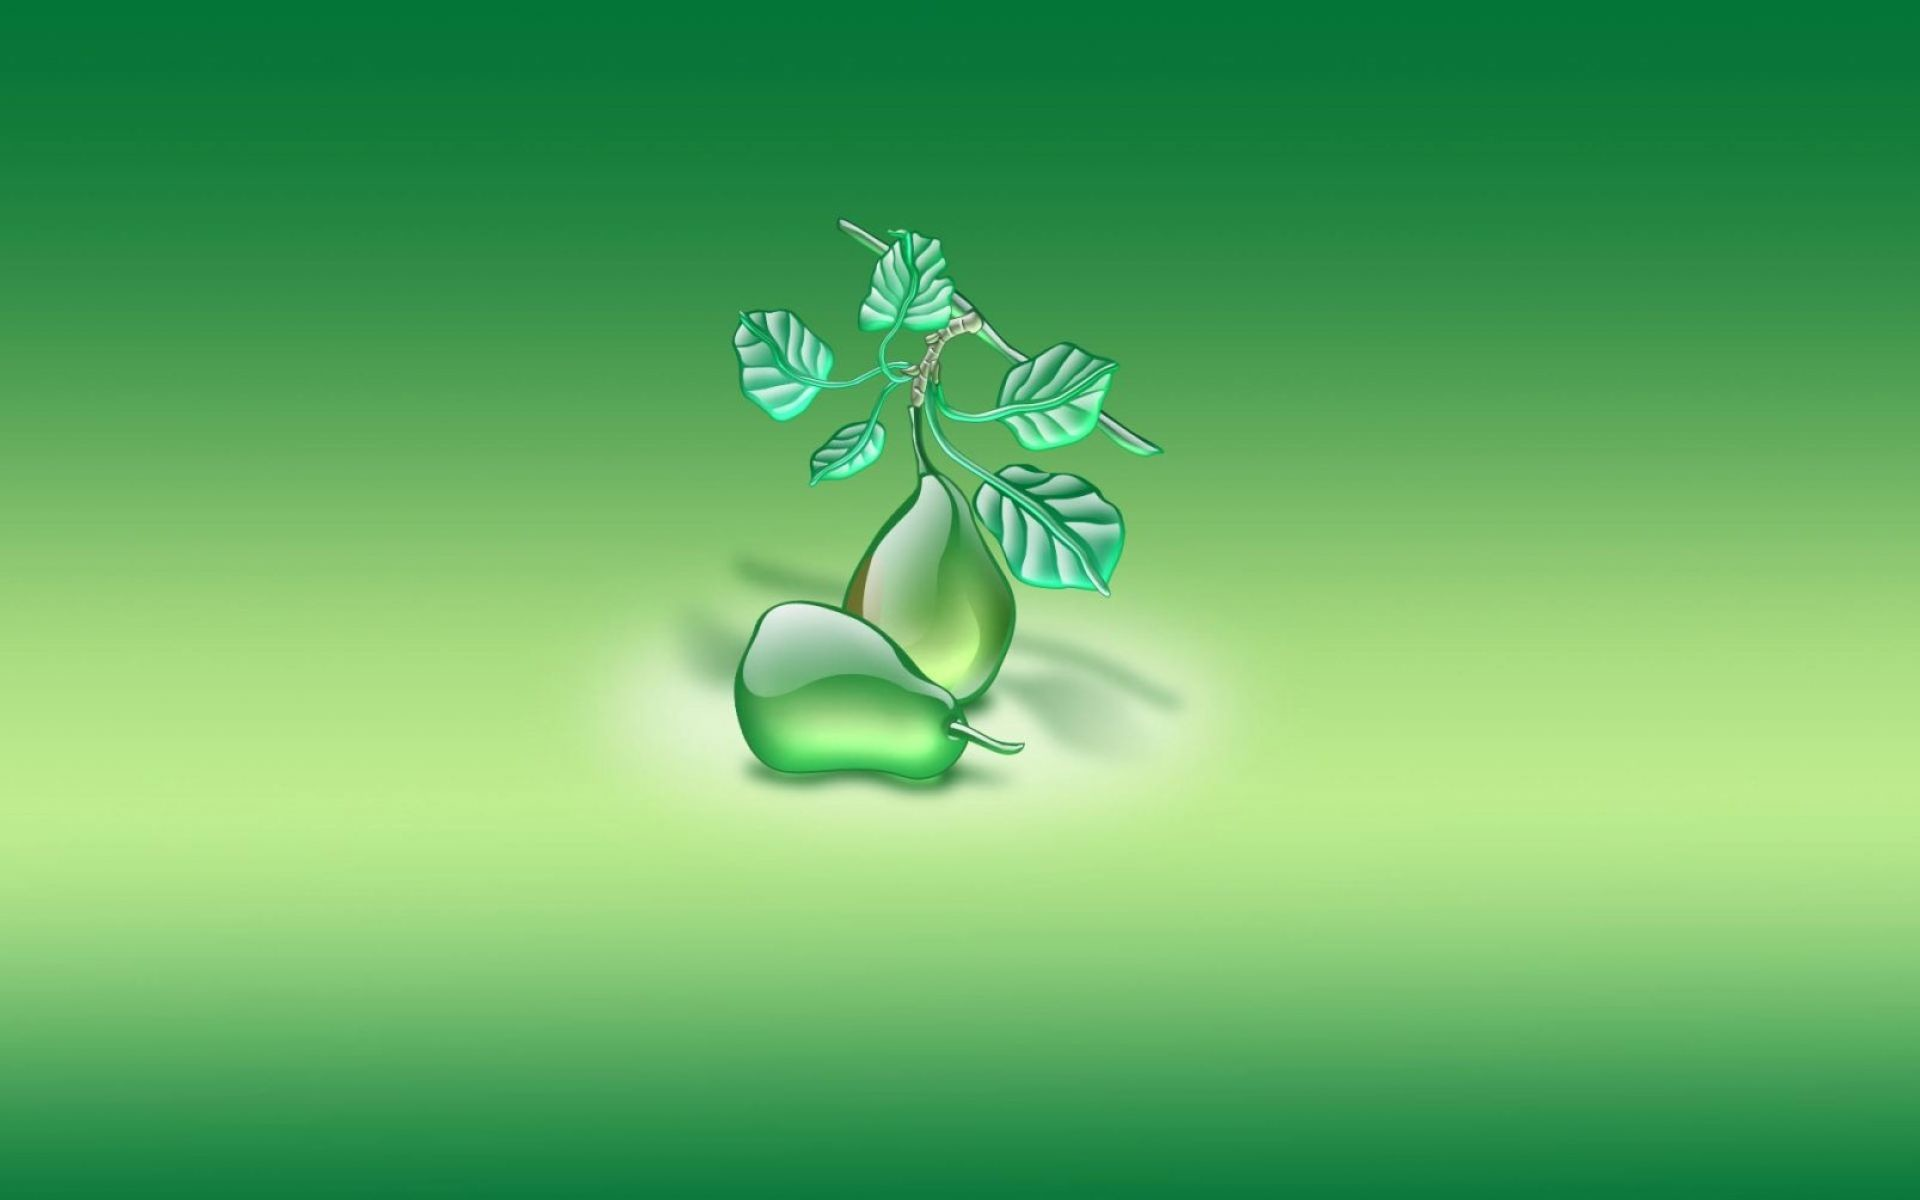 Res: 1920x1200, 3D Pear and Leafs Digital Art Wallpaper | HD 3D and Abstract Wallpaper Free  Download ...